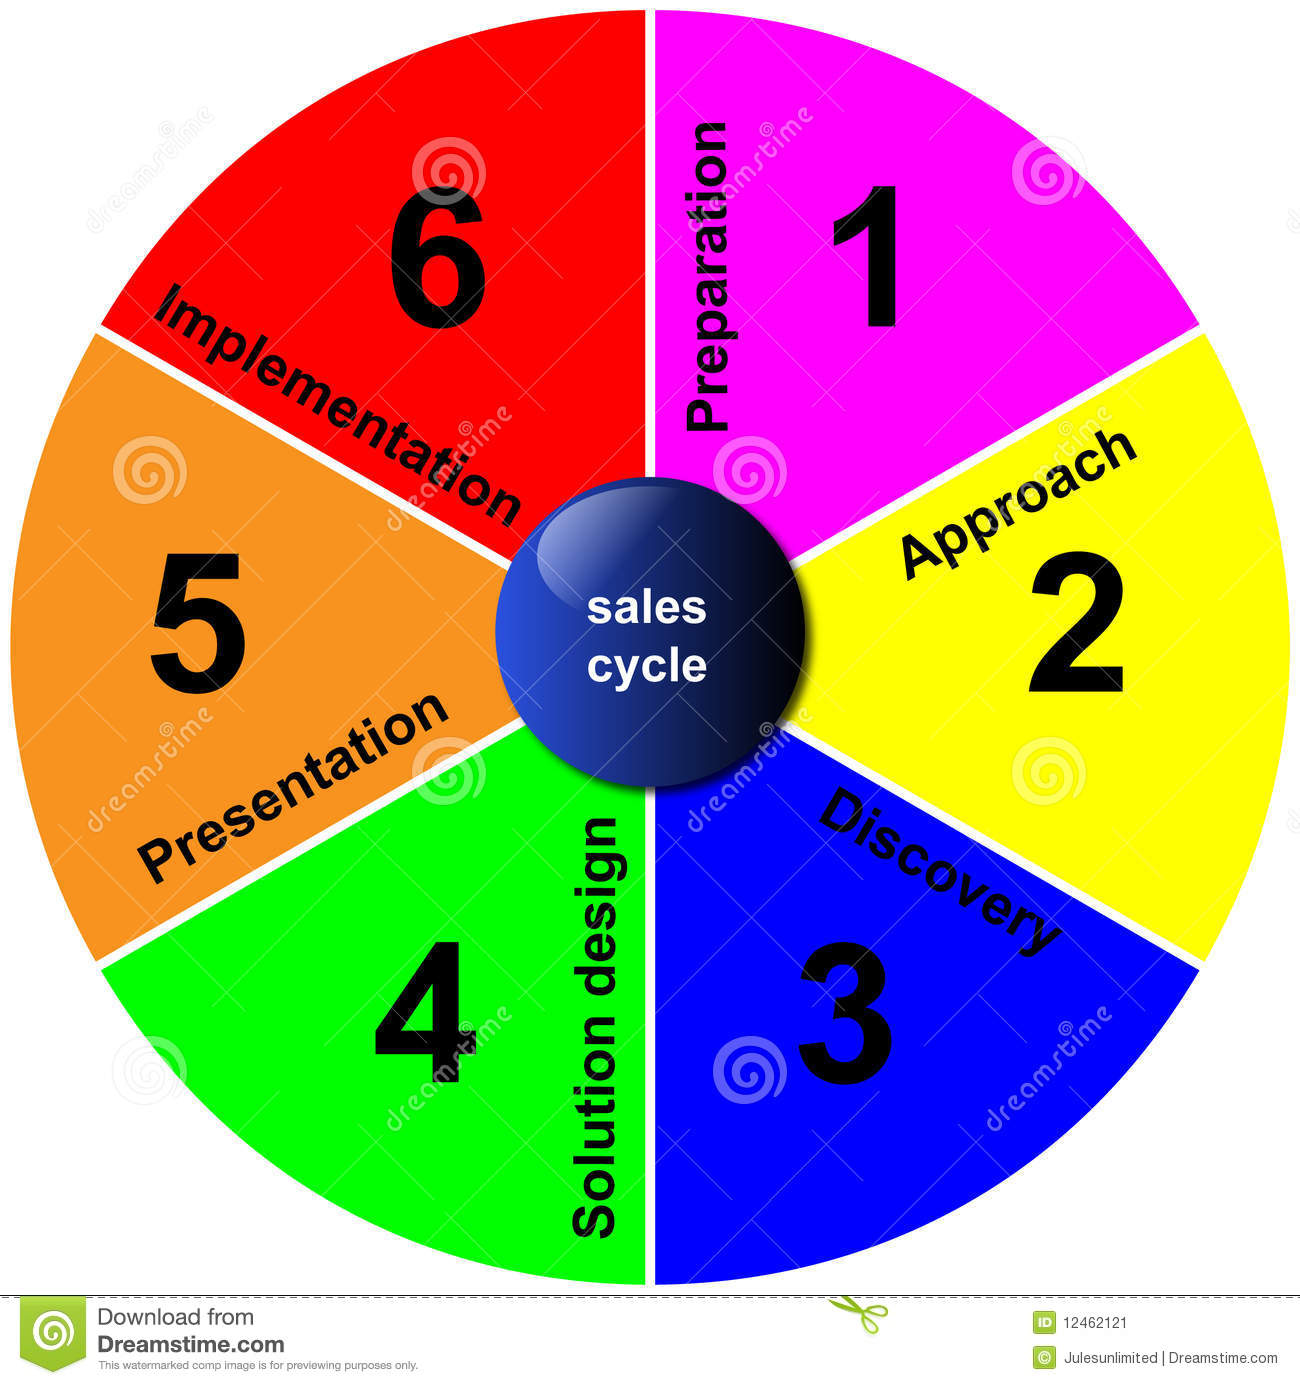 hight resolution of diagram of the sales cycle a part of the business planning